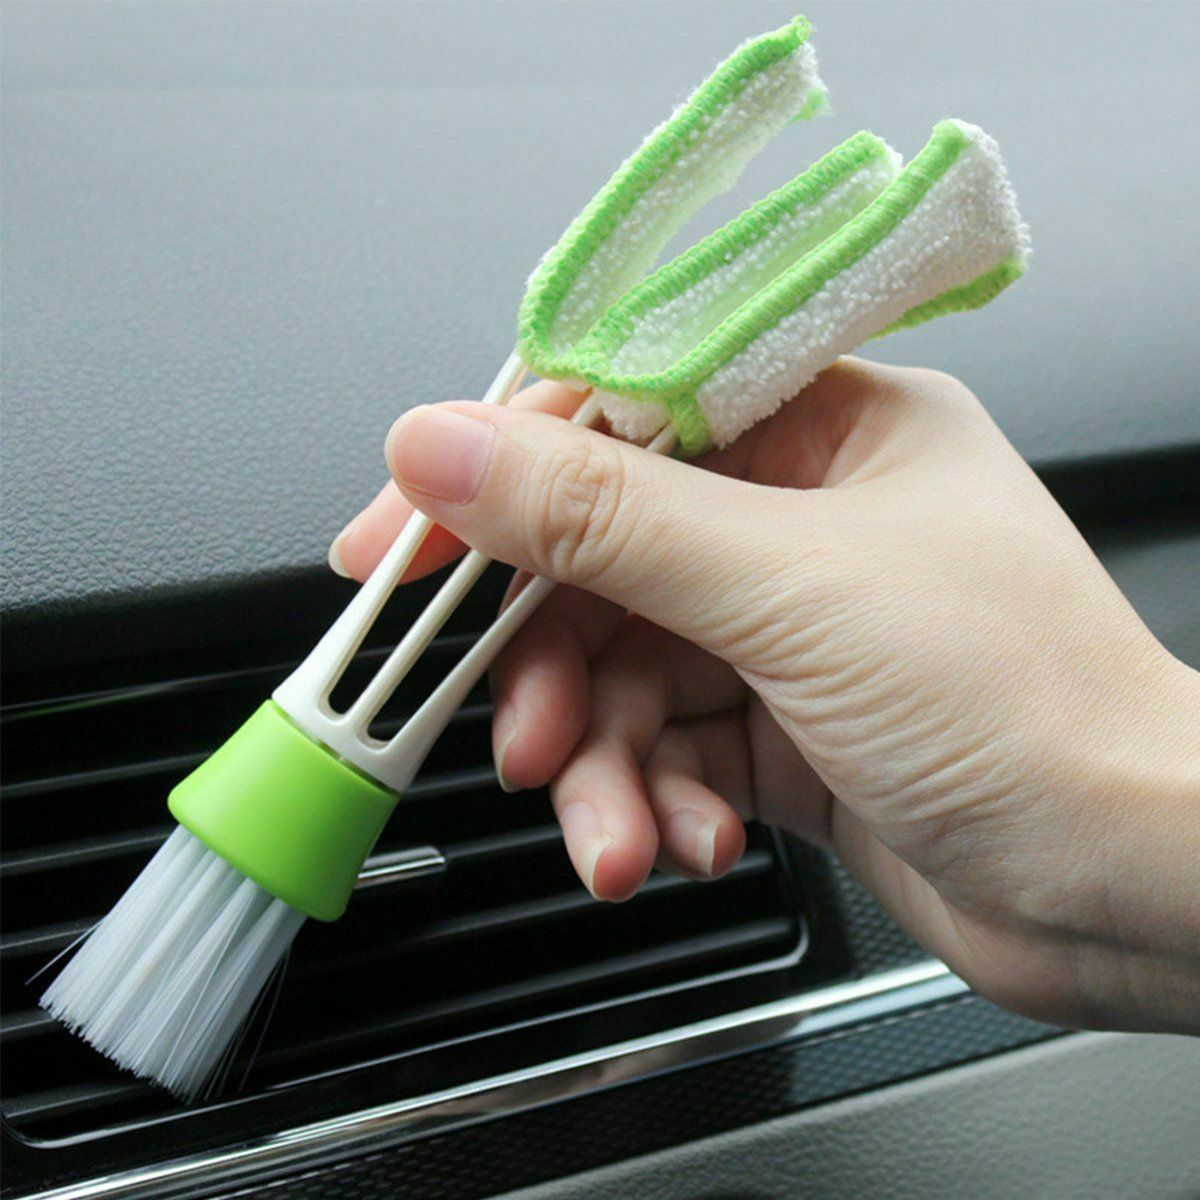 HOT 2 In 1 Car Air-Condition Vent Cleaning Brush Blind Cleaner Keyboard Duster